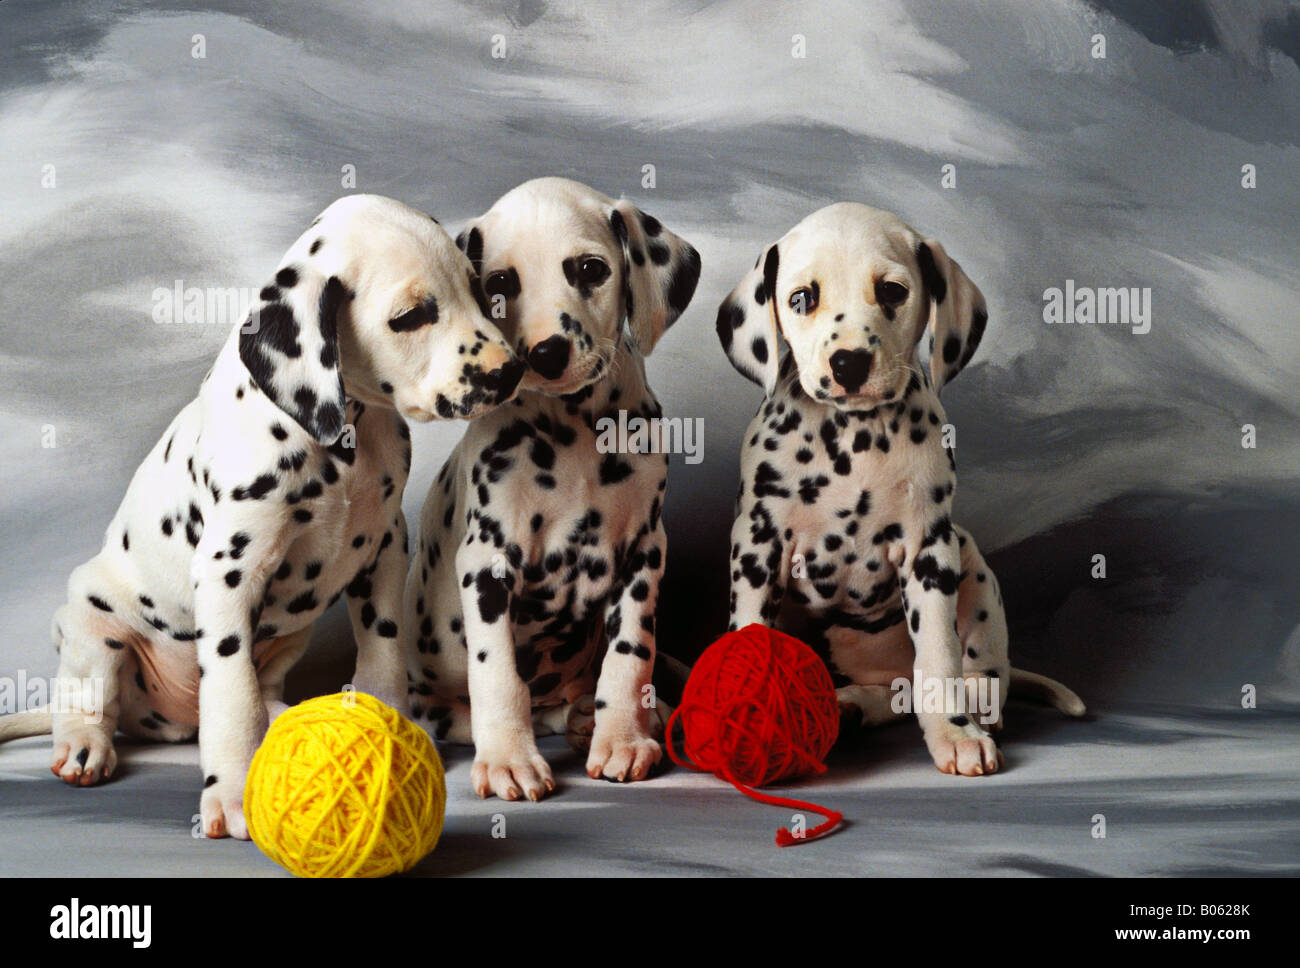 Dalmatian puppies three puppies with balls of red and yellow yarn - Stock Image